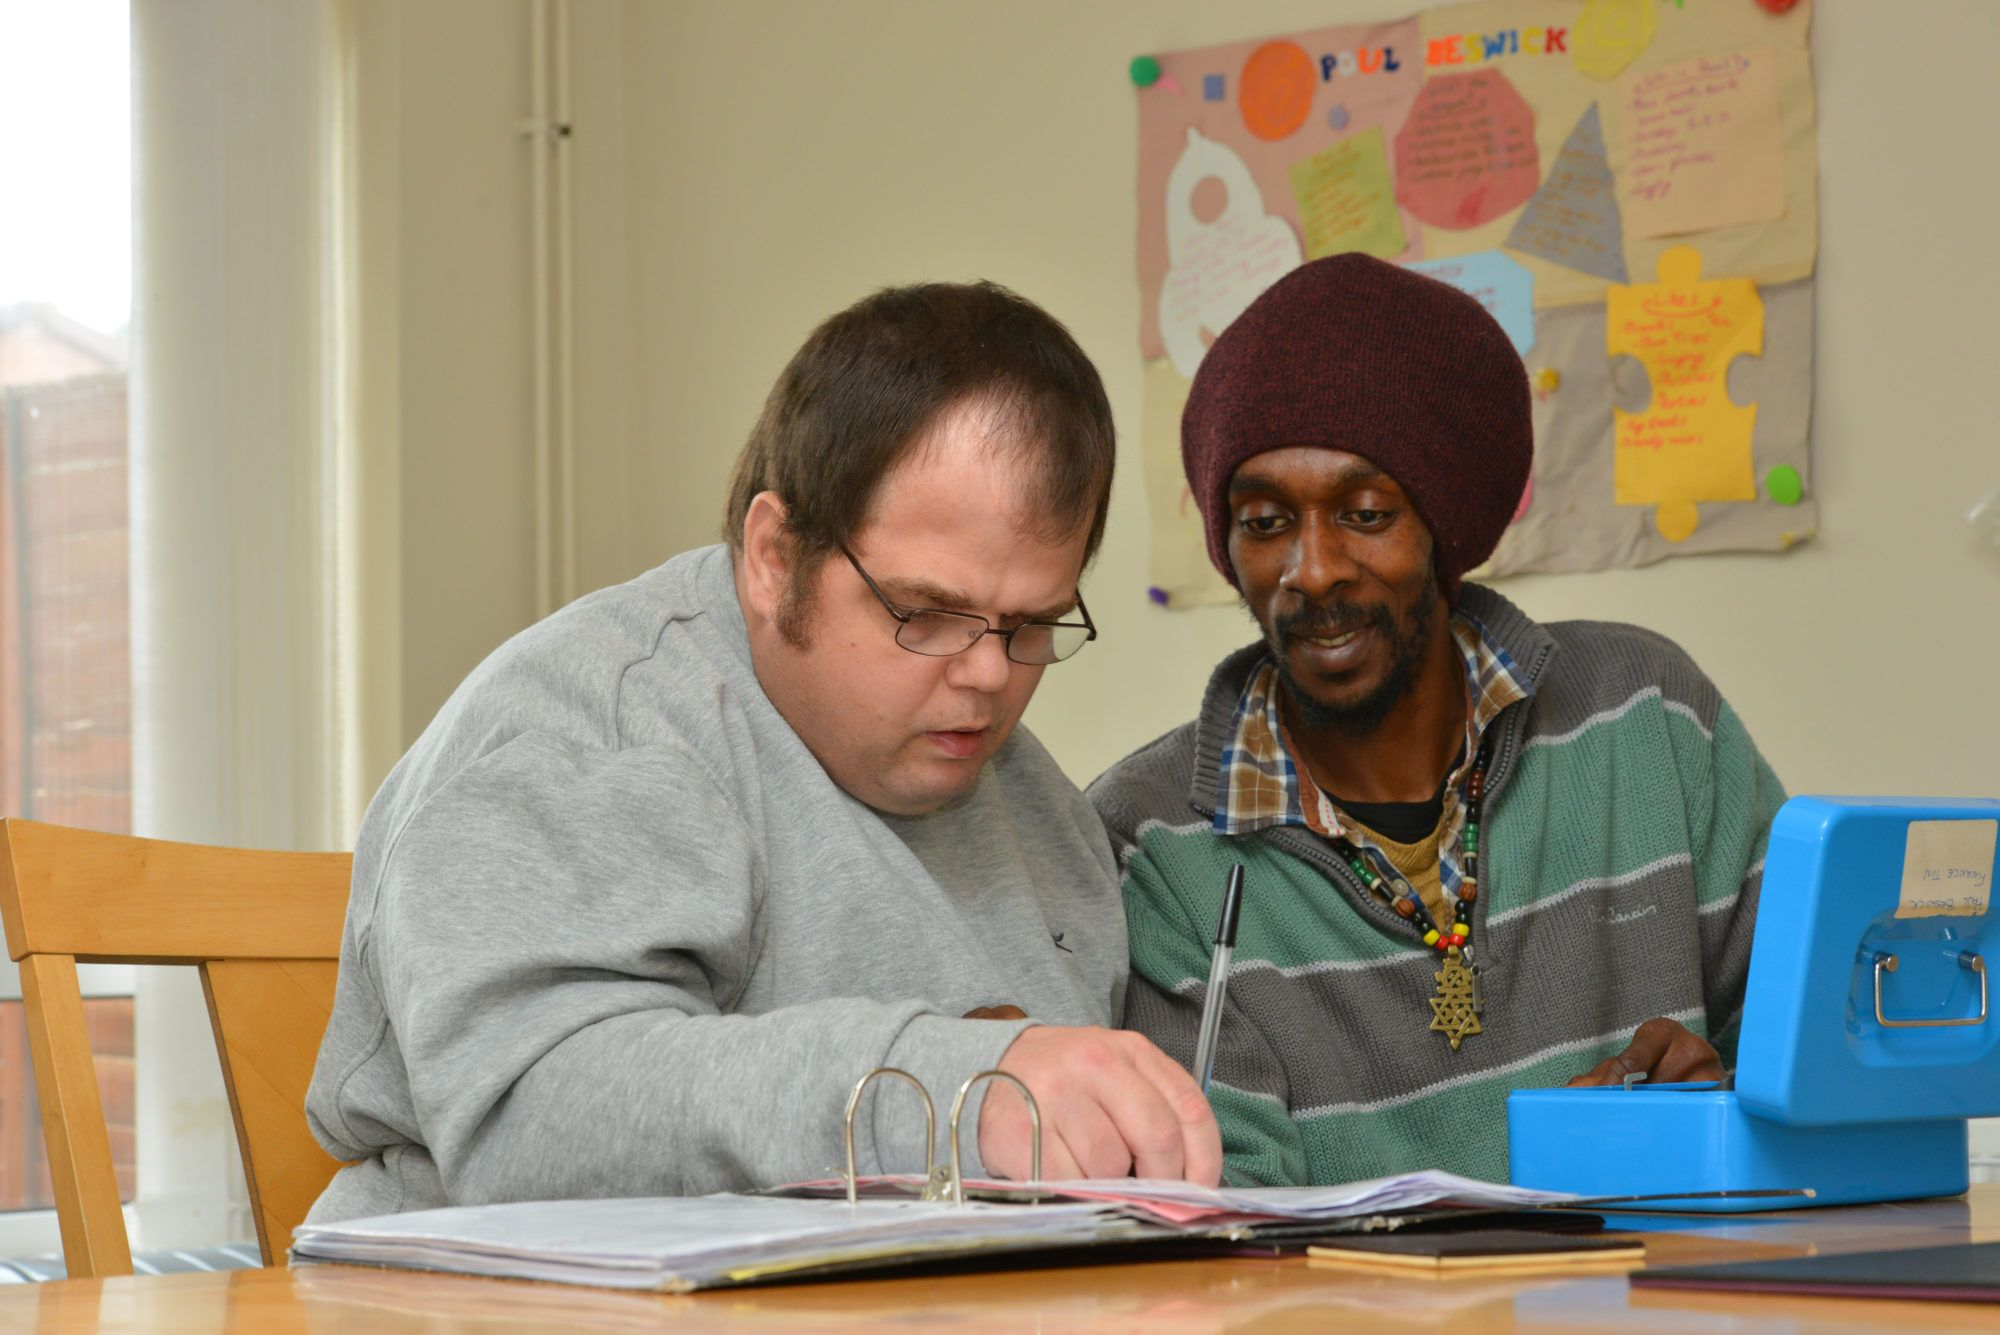 Two men at a table, one is writing in a file